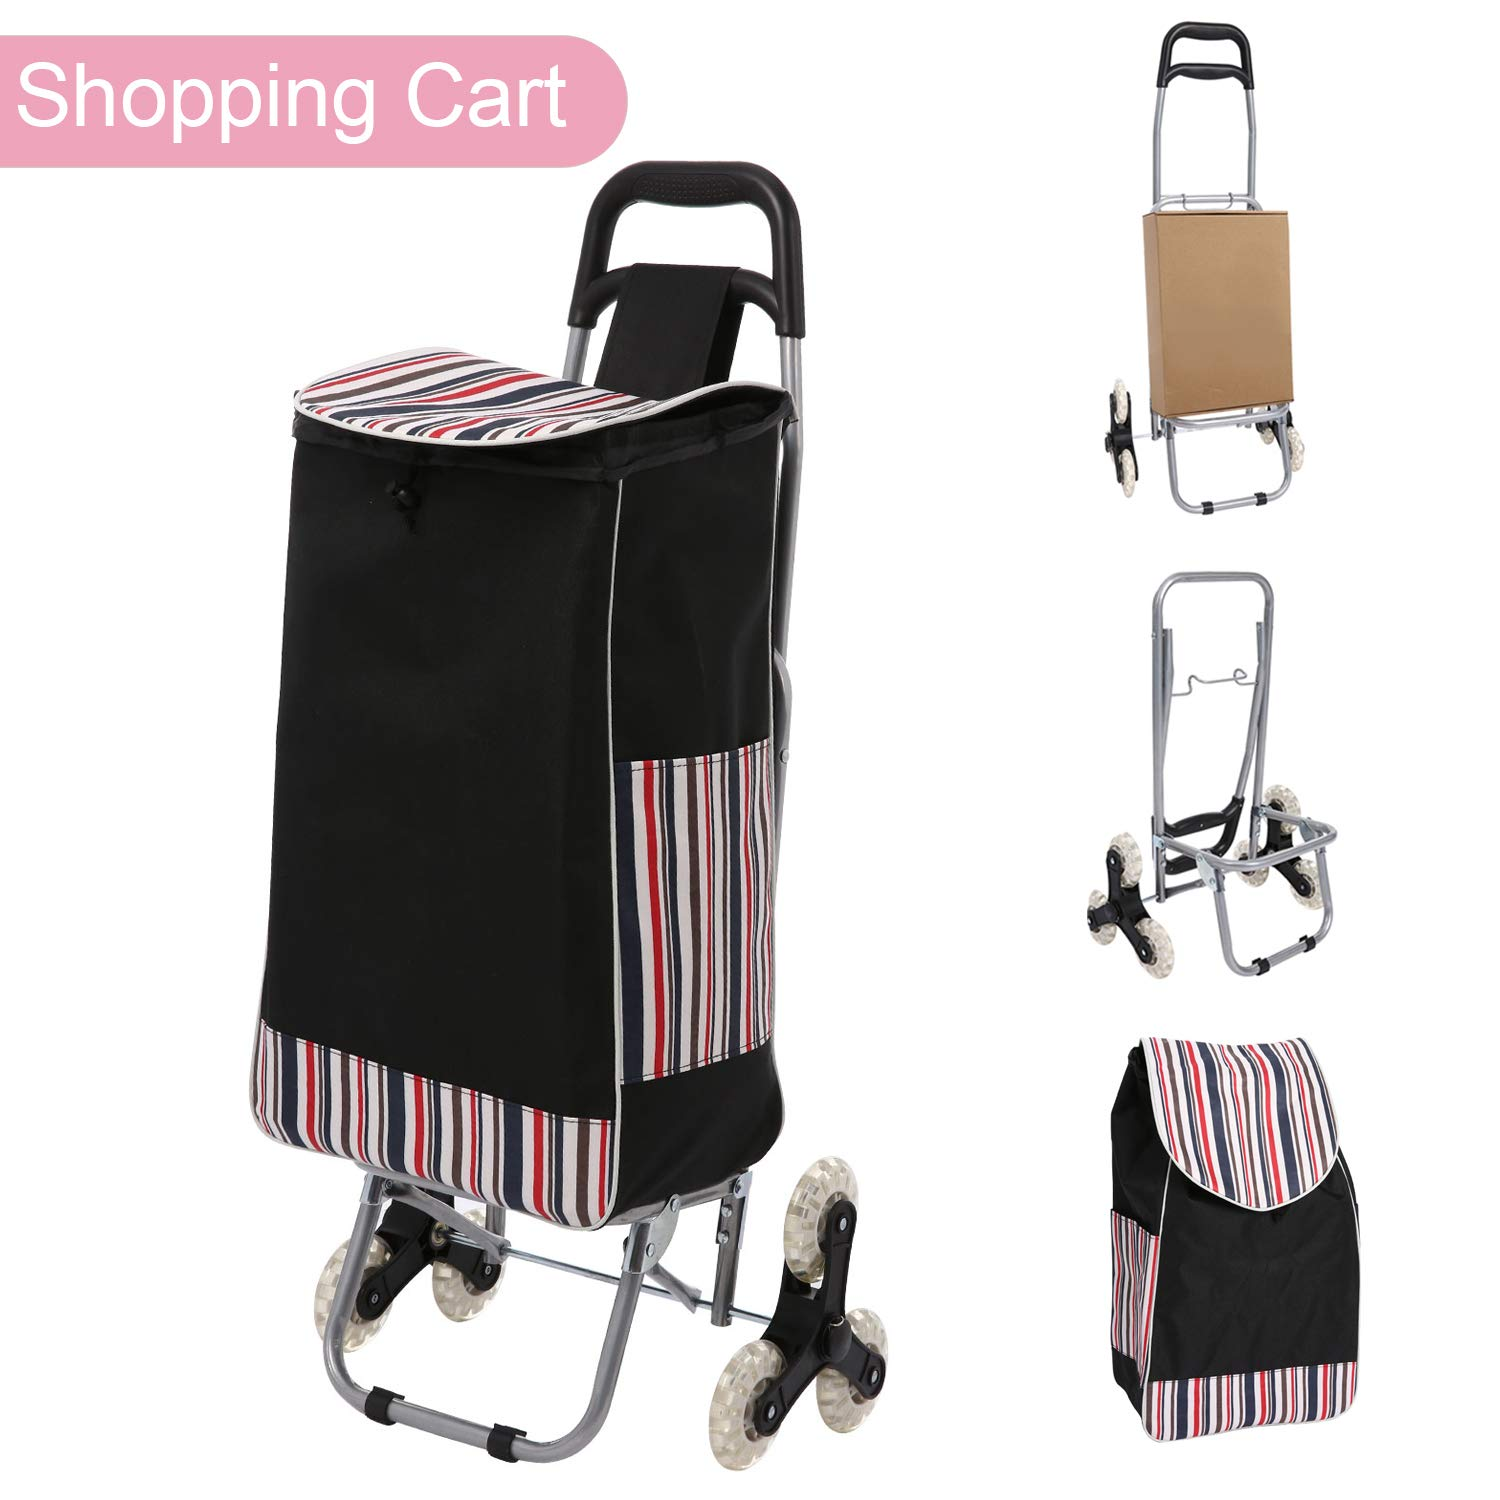 Folding Shopping Cart, Stair Climbing Cart Trolly Grocery Laundry Utility Cart with Wheel & Removable Waterproof Canvas Bag, 150lbs Capacity by Korie